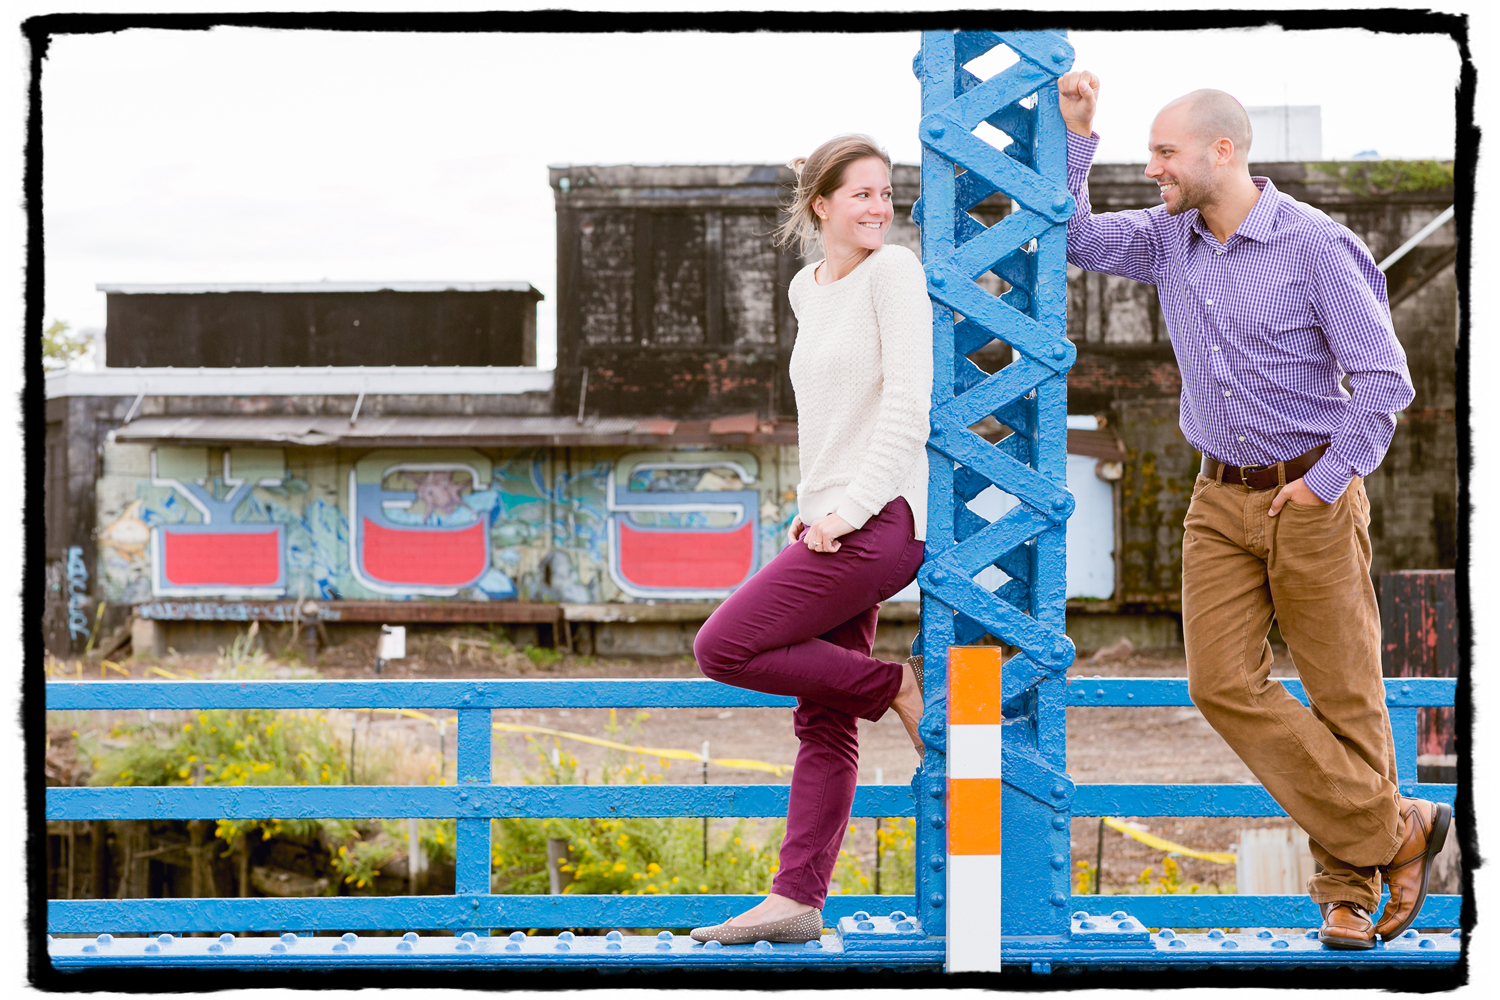 Engagement Portraits: Laura & Joel in Red Hook, Brooklyn.